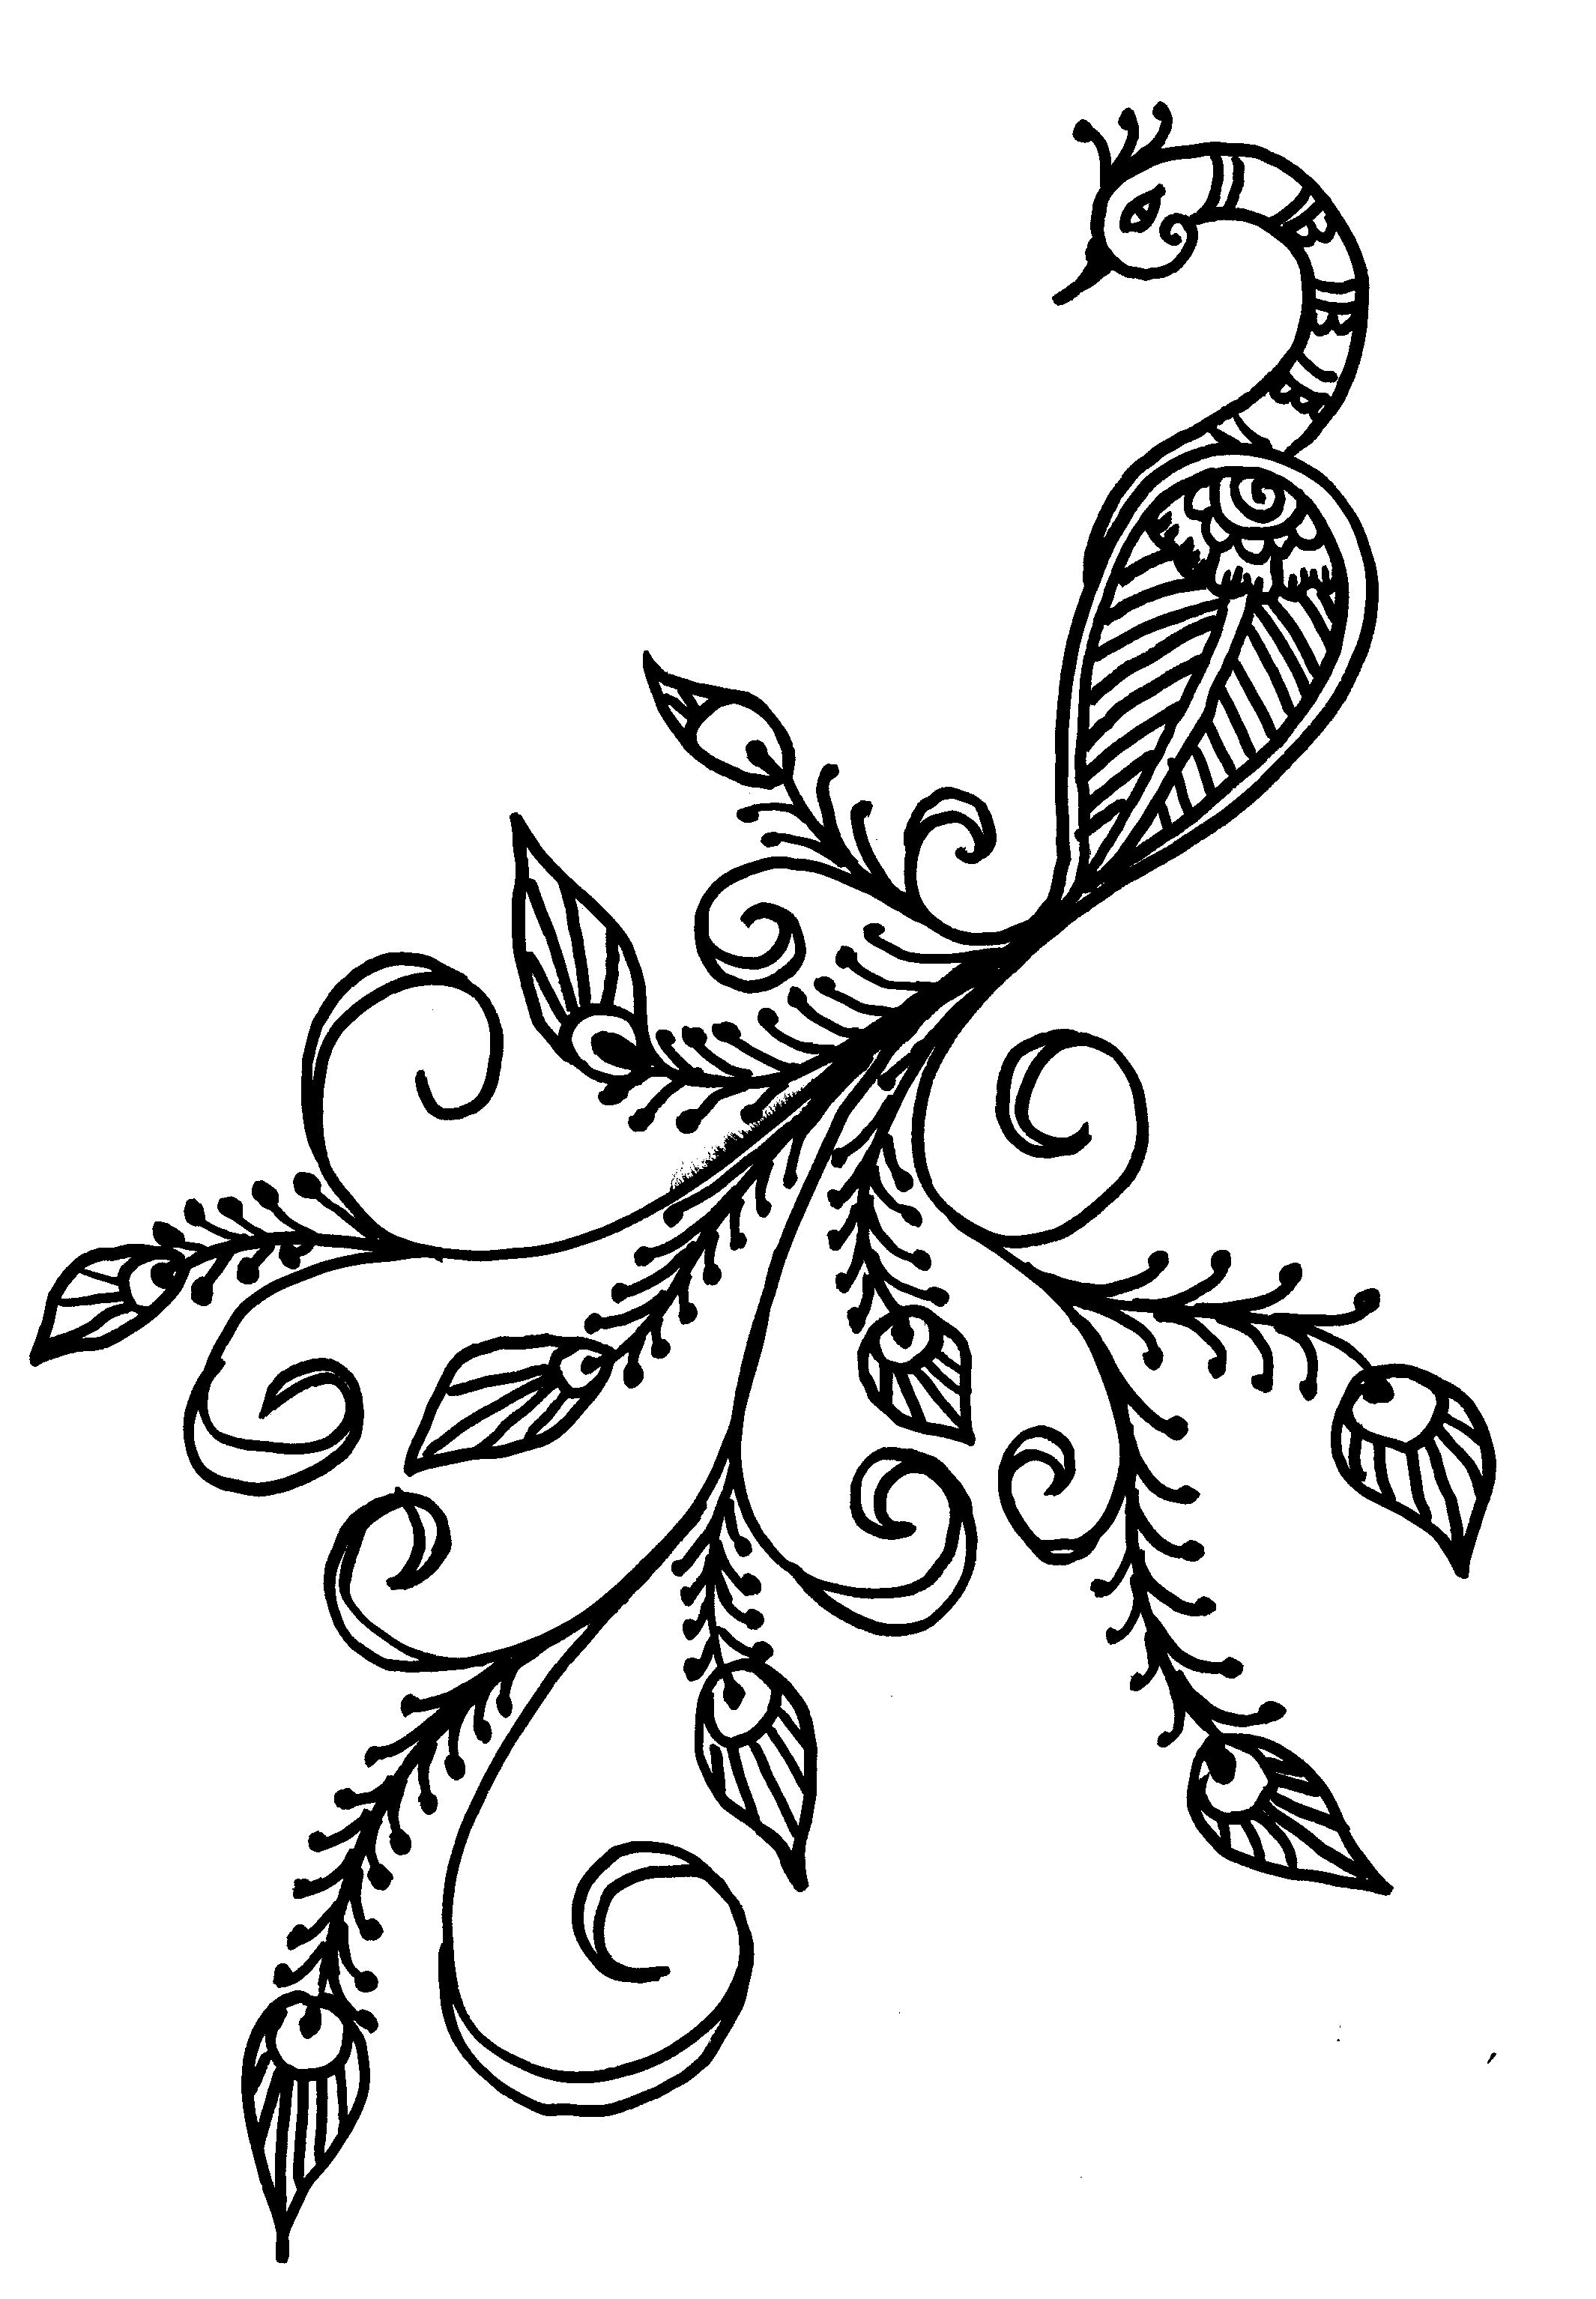 easy peacock drawing bing images peacock pinterest peacock drawing peacocks and hennas. Black Bedroom Furniture Sets. Home Design Ideas